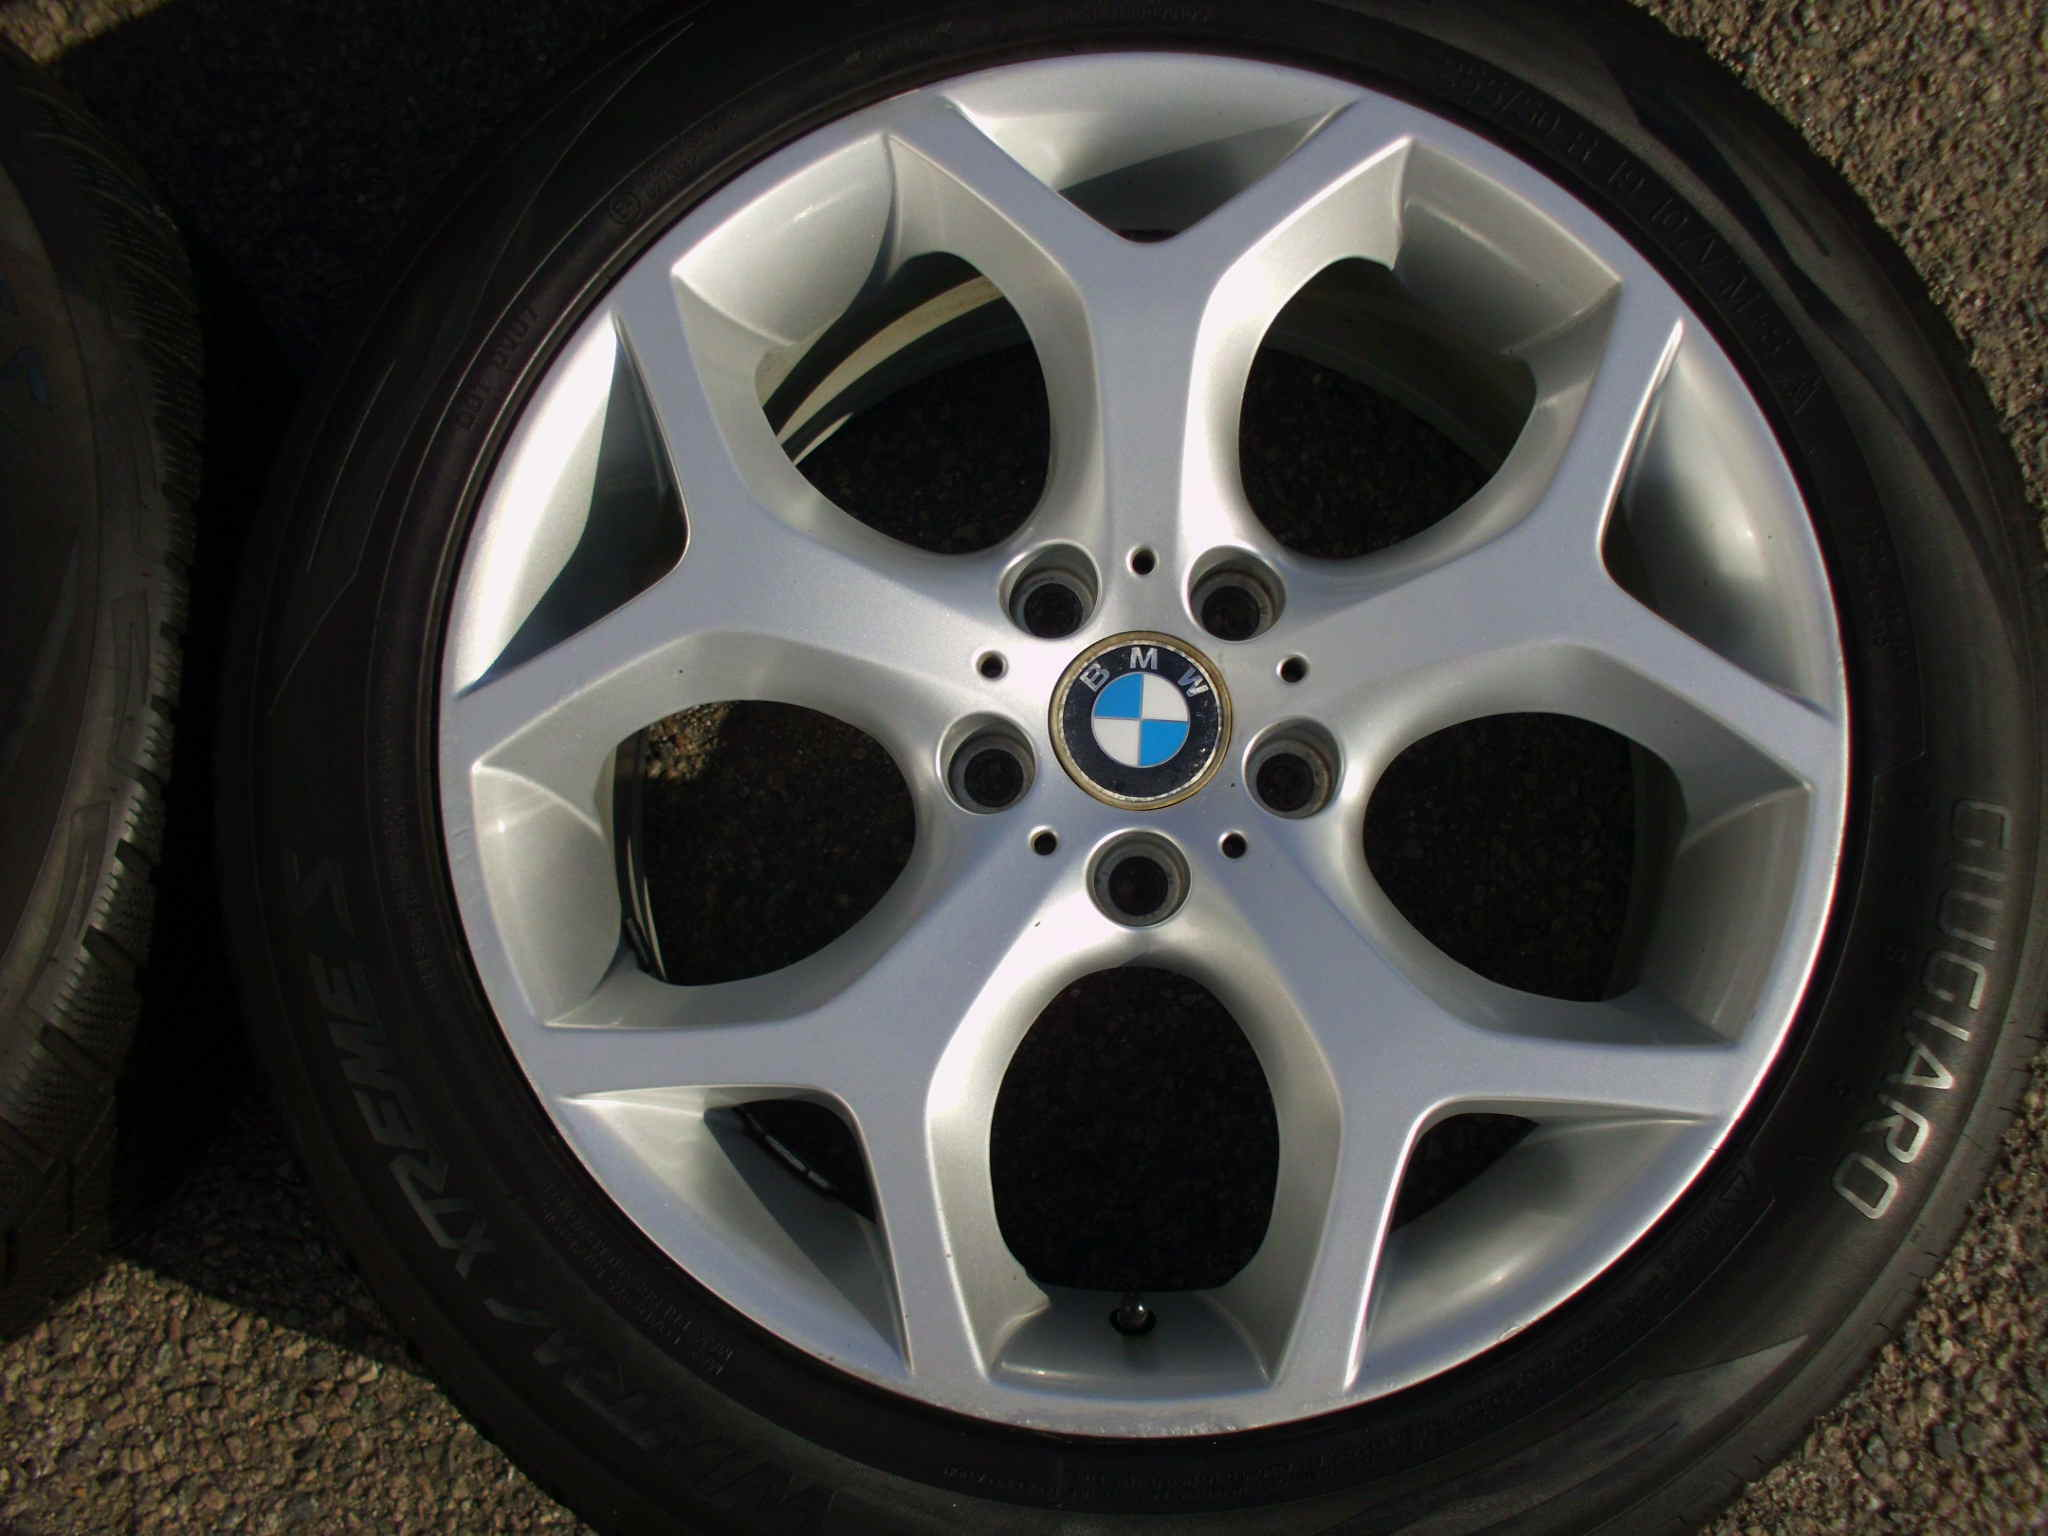 "USED 19"" NON OE REPLACMENT Y SPOKE X5 ALLOYS, VGC,WITH VG, WIDE REARS, INC VG MATCHING VREDESTINE WINTER TYRES"